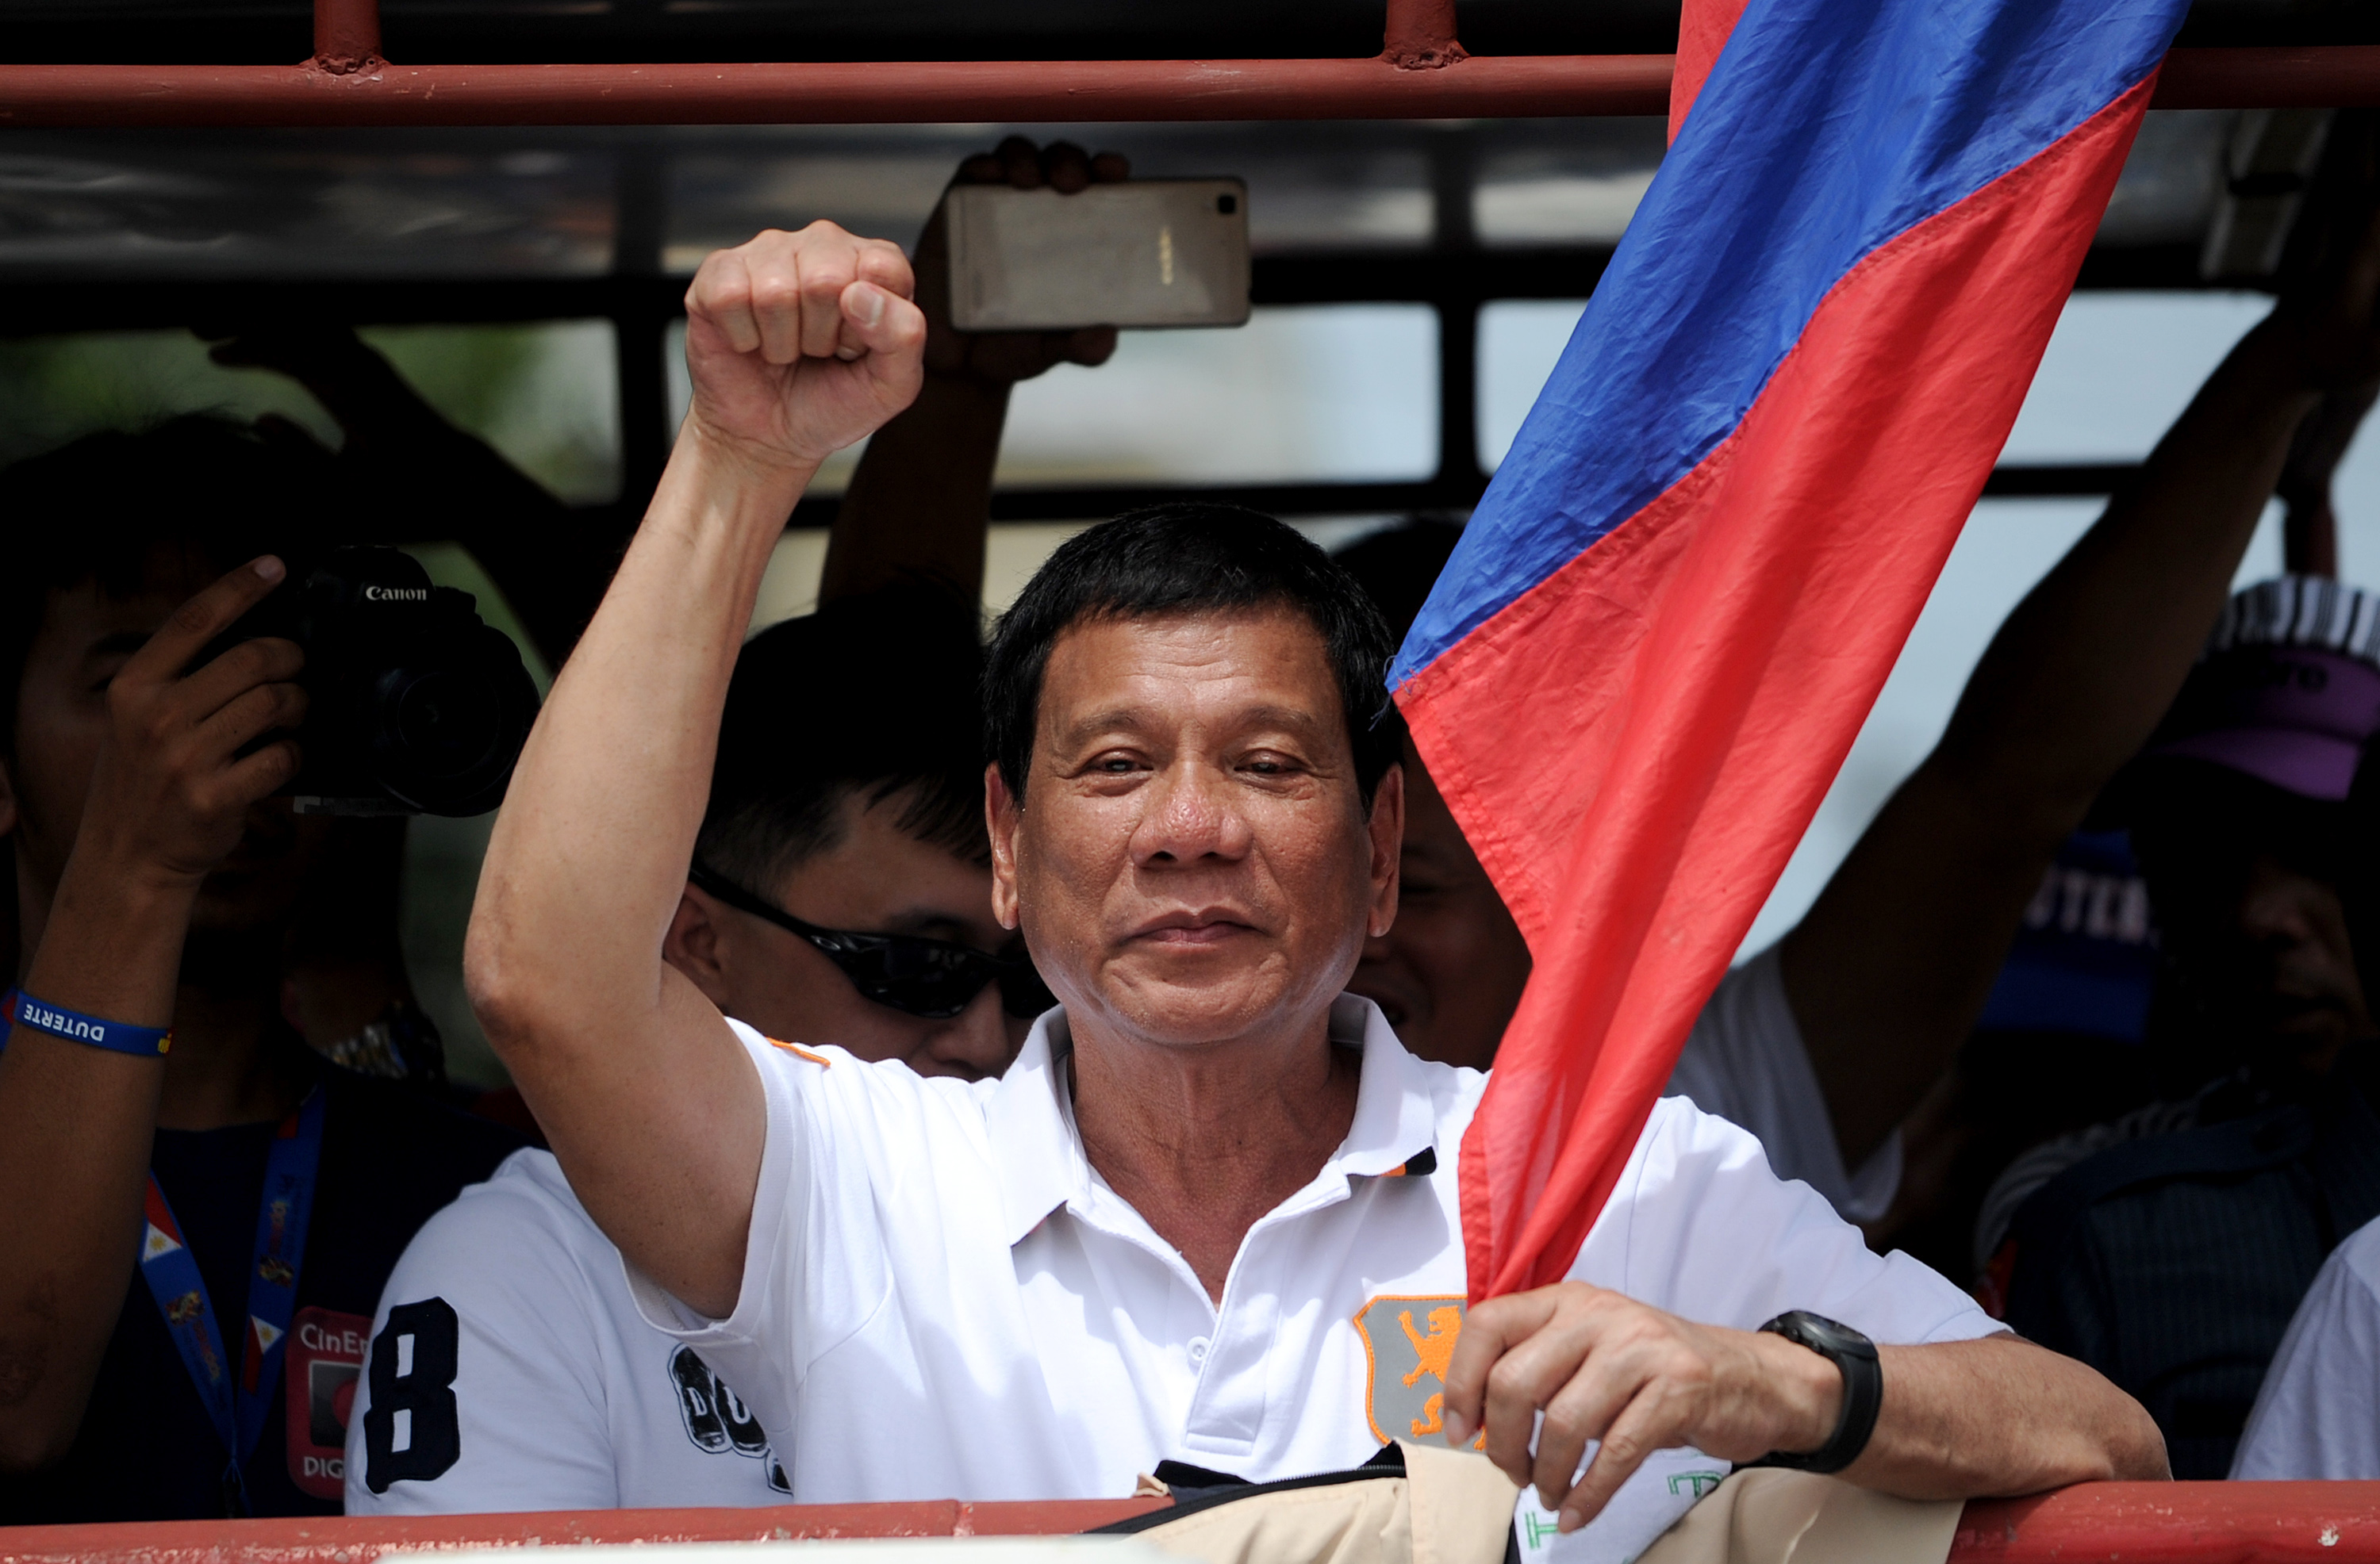 Philippine President Rodrigo Duterte raises a clenched fist during his campaign sortie in Lingayen, Pangasinan, north of Manila, on March 2, 2016